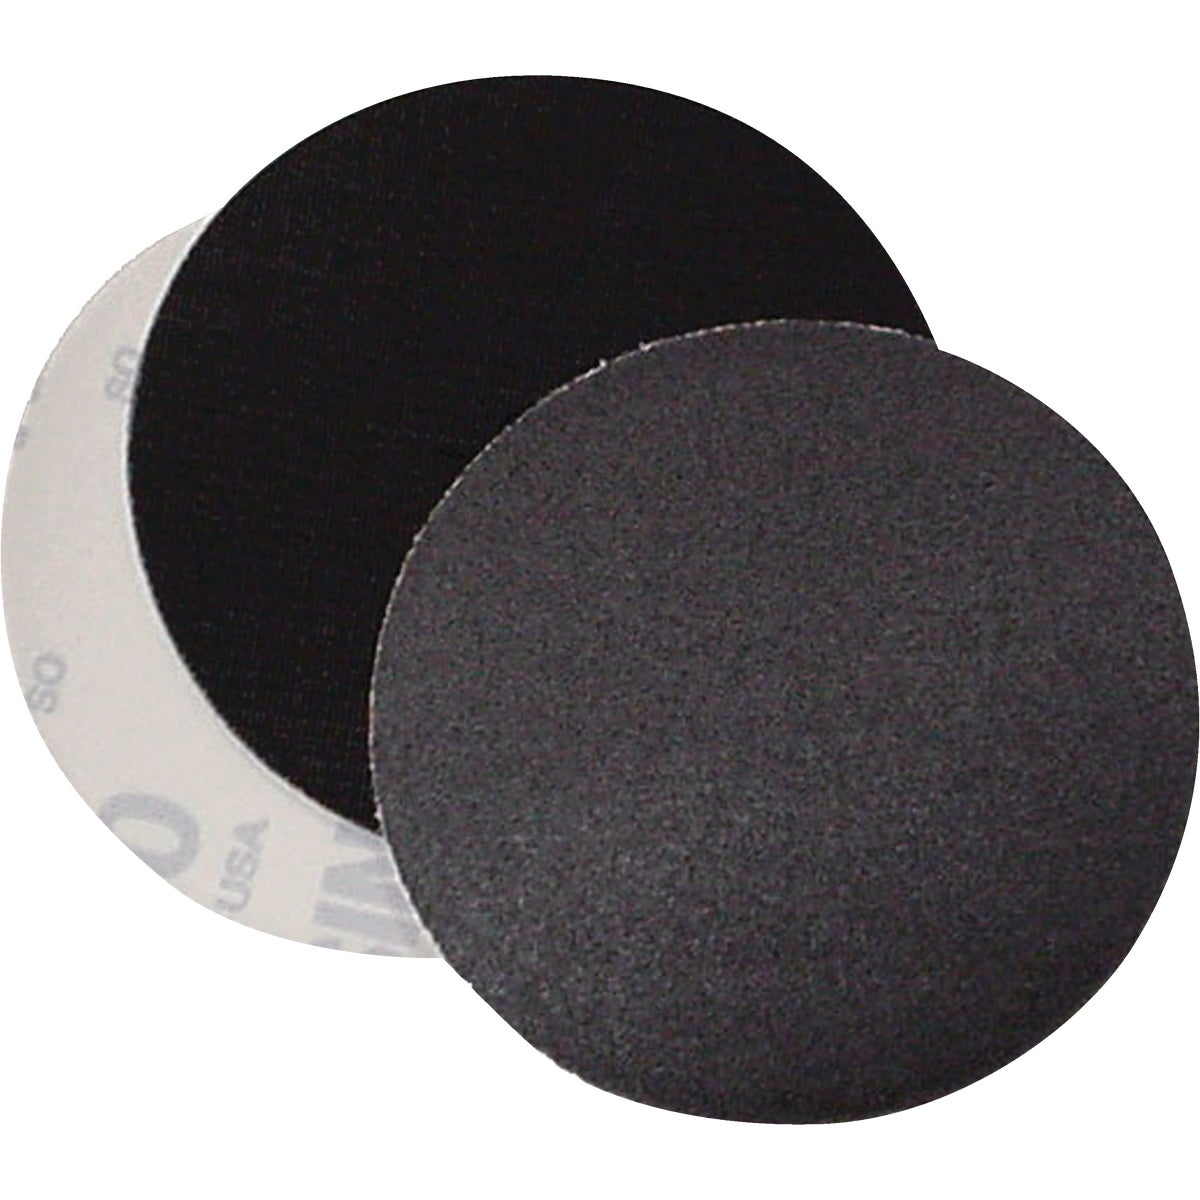 "6-7/8"" 20G SANDING SHEET - 003-867820 by Virginia Abrasives"